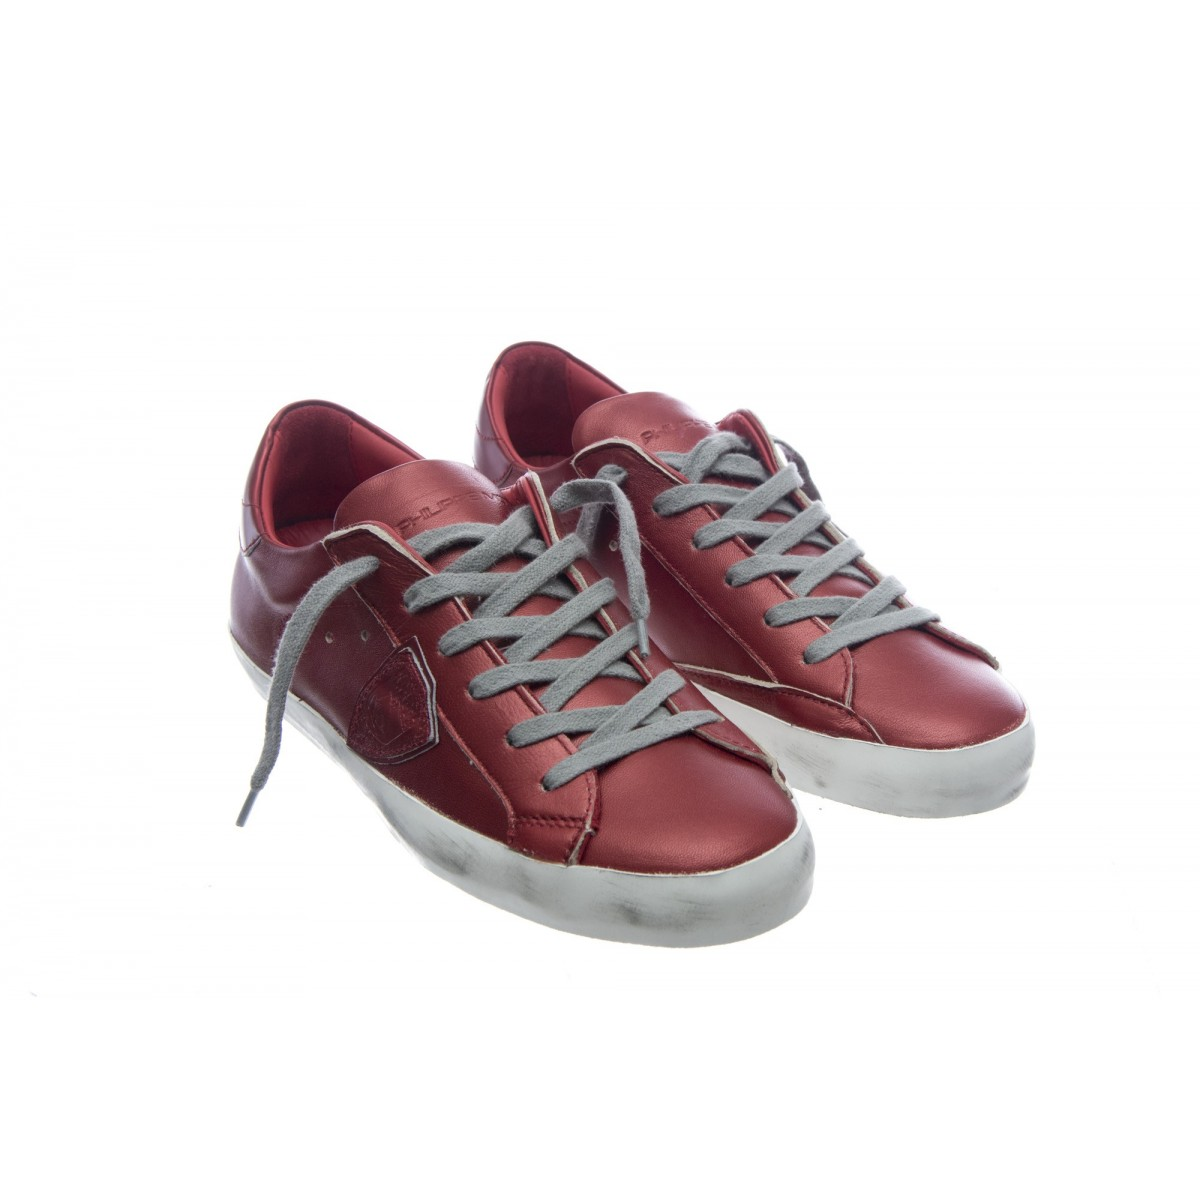 Scarpa - Clld classic low d